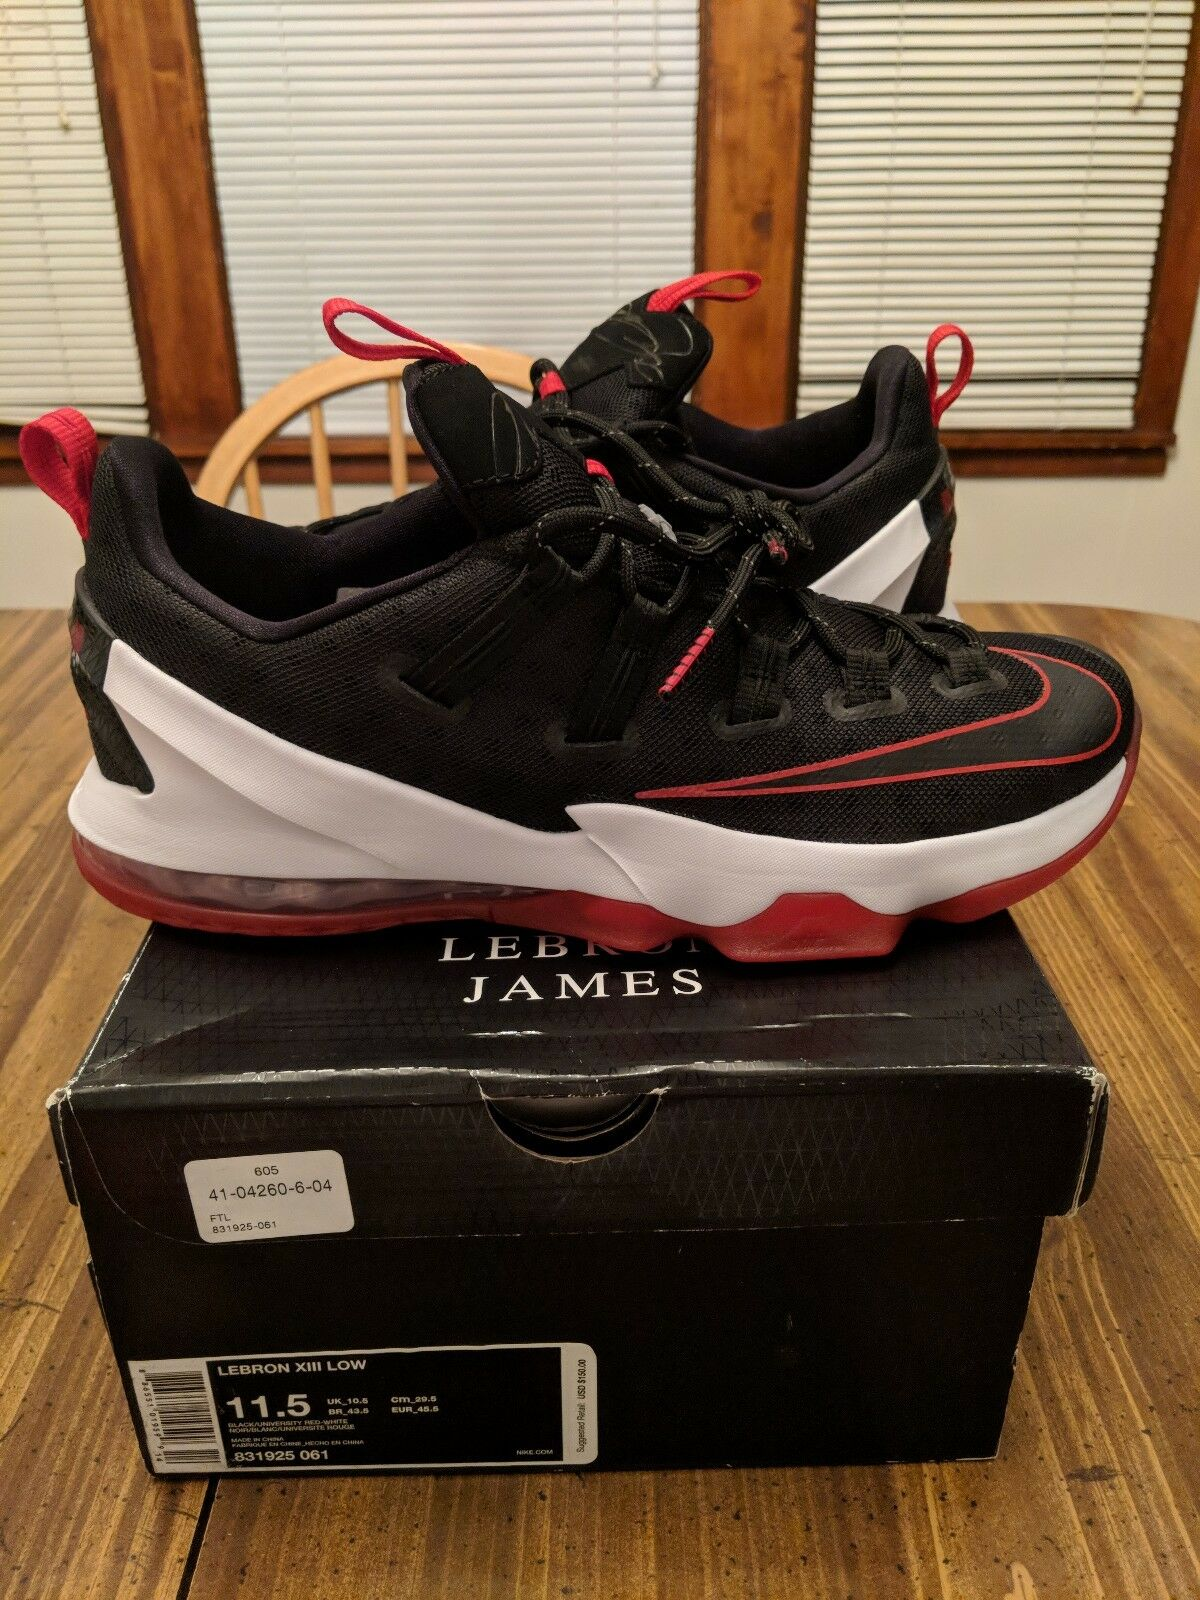 Nike Lebron 13 Xlll Low Size 11.5 Men's basketball black unv red-white 831925061